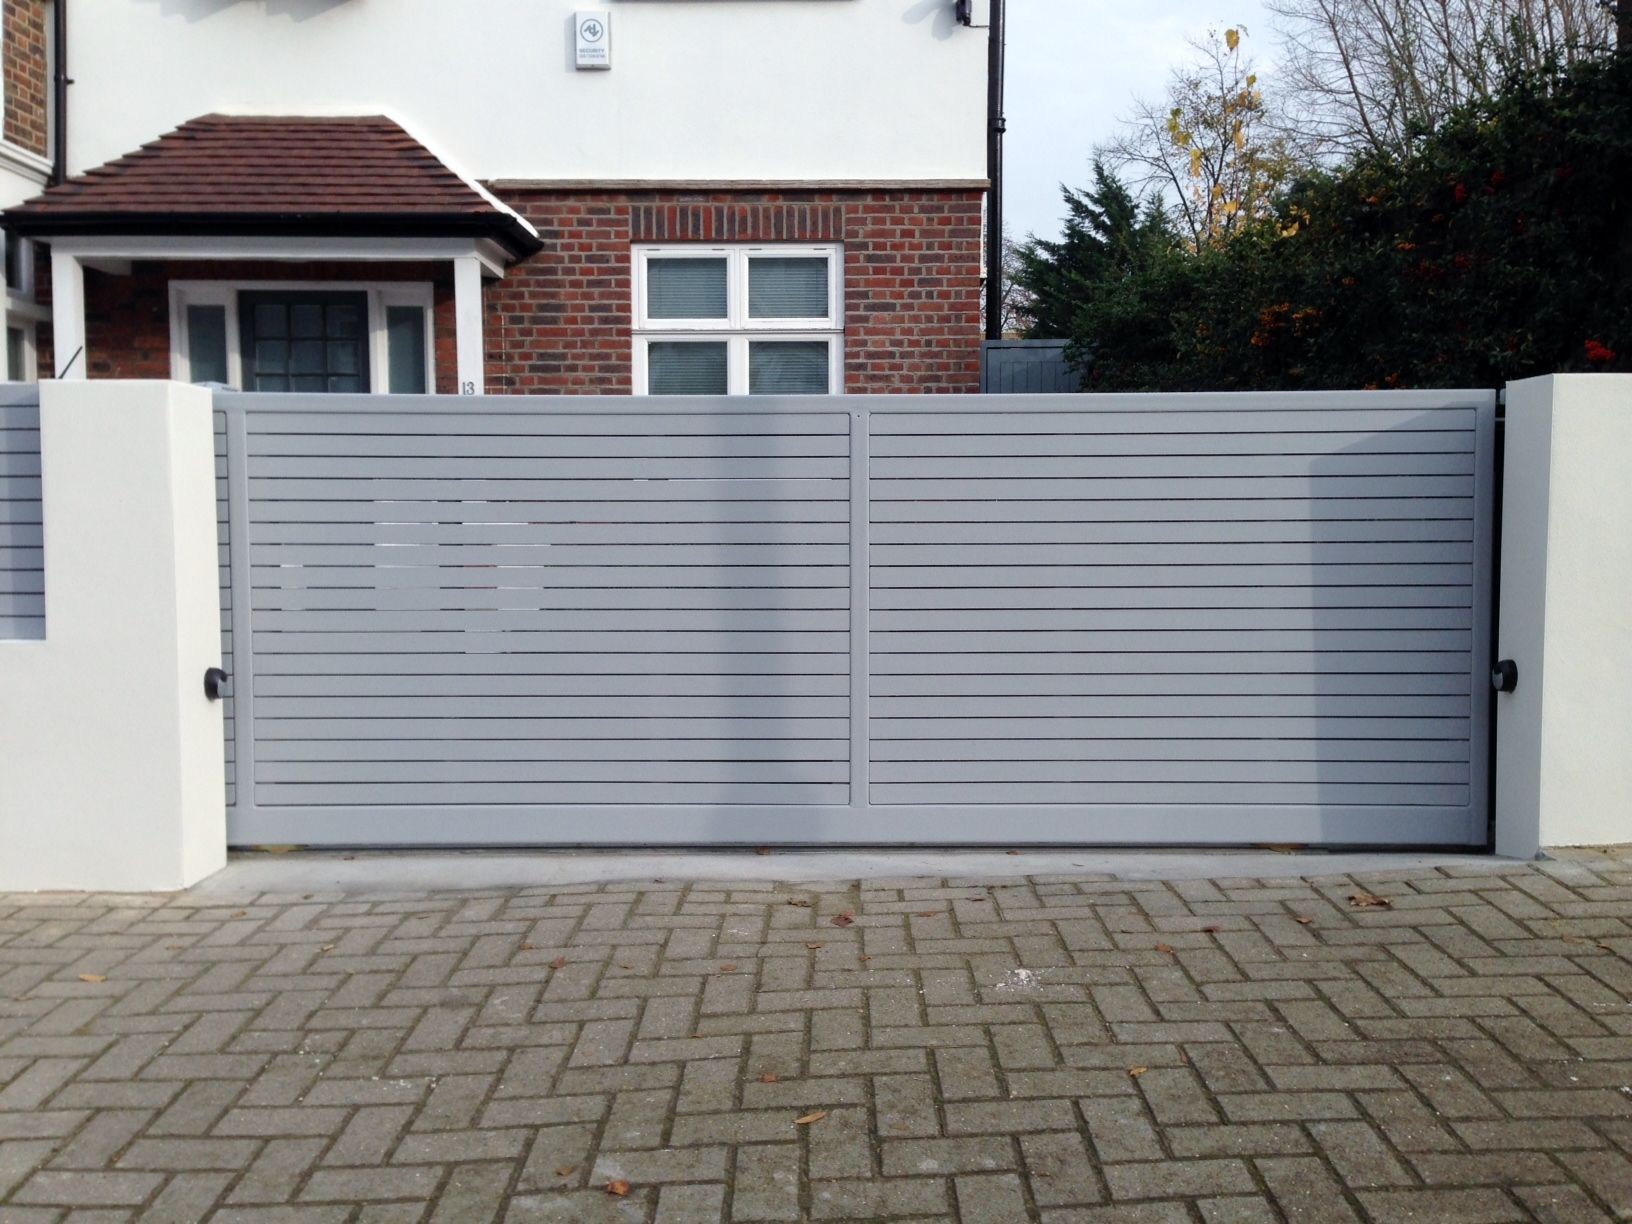 Boundary Wall Gate Design Modern Wooden Fence Furniture From Wood